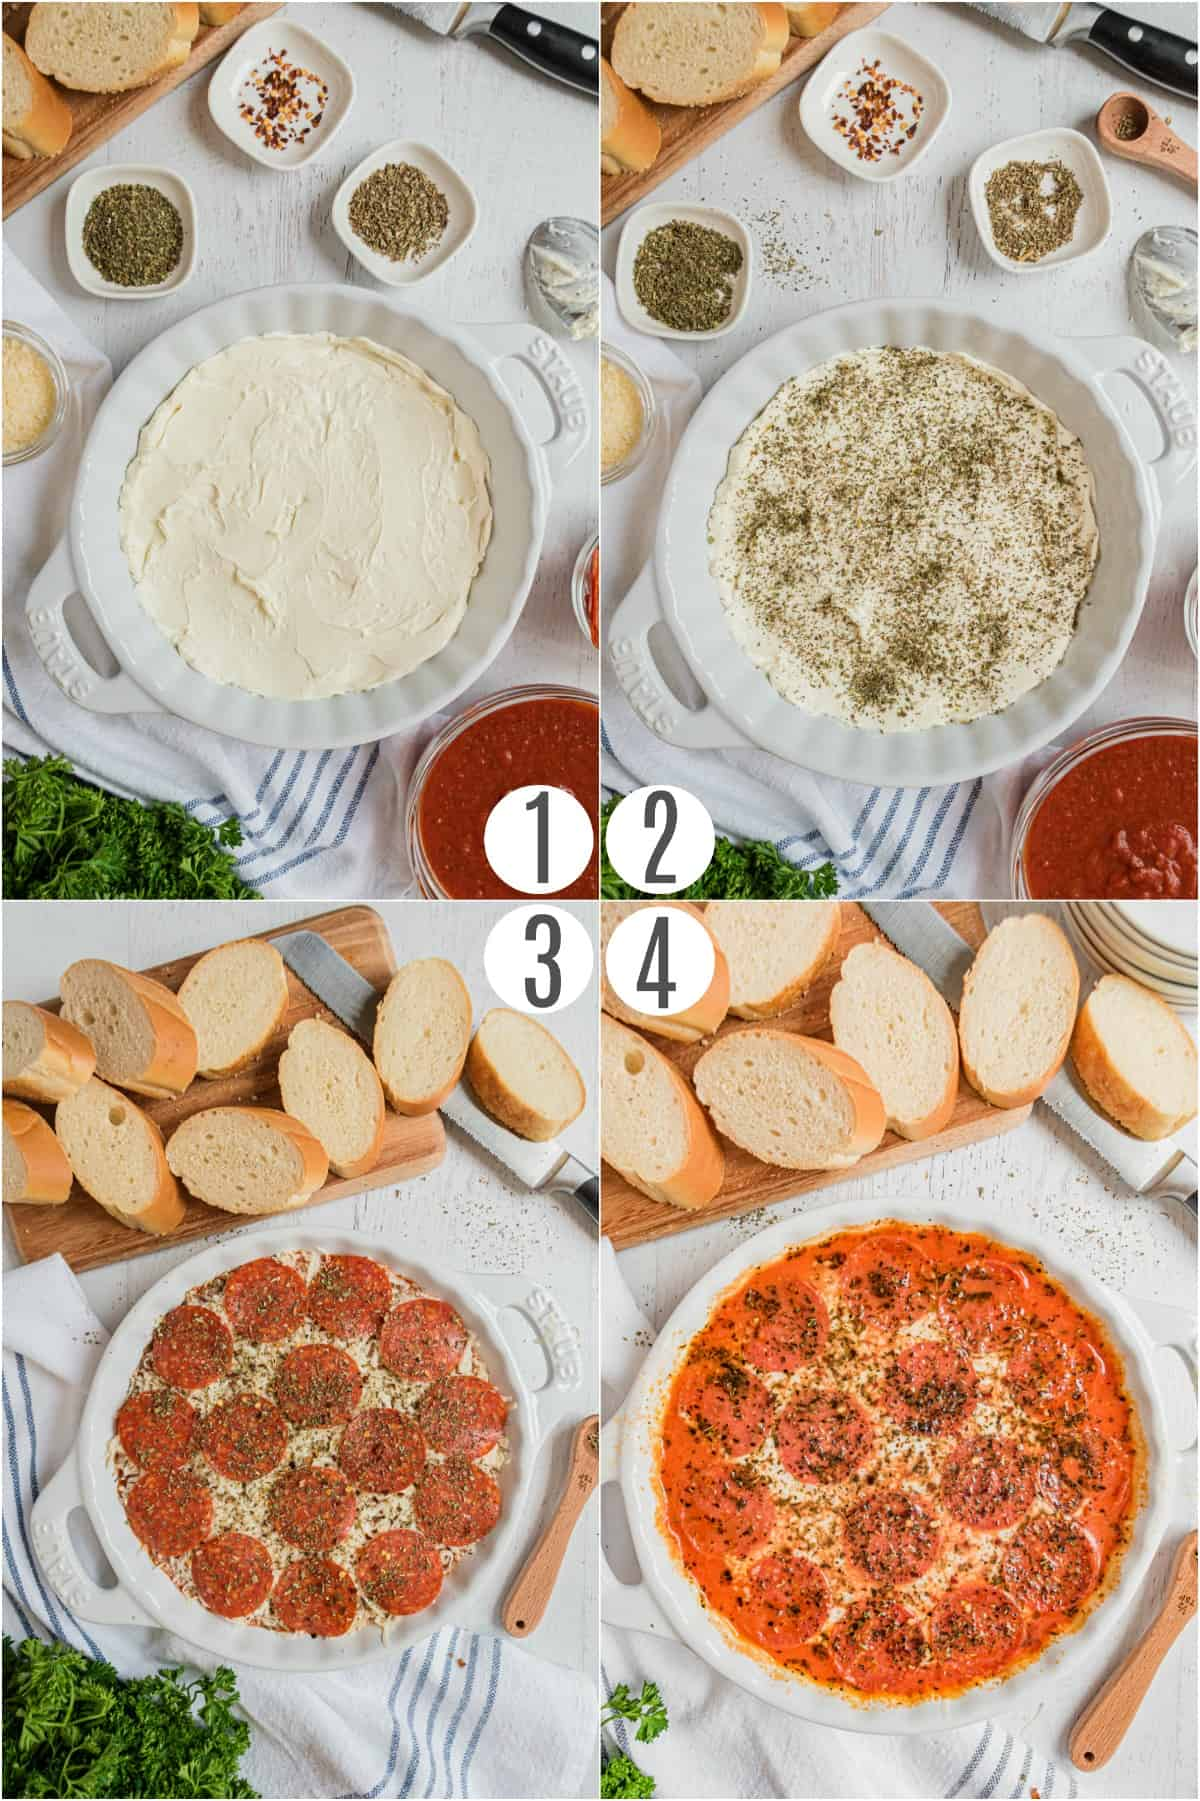 Step by step photos showing how to make pepperoni pizza dip in a pie plate.